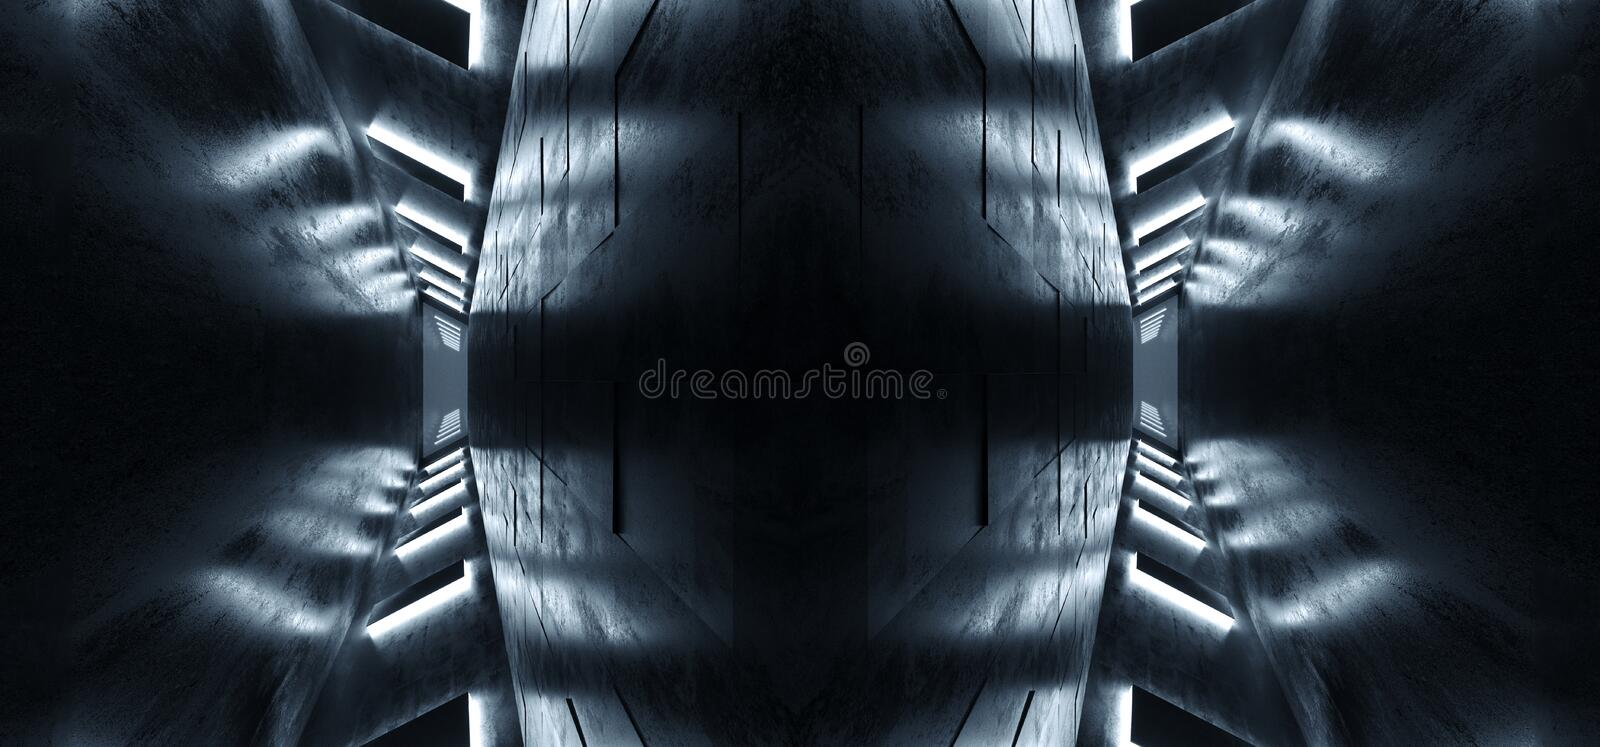 Abstract Alien Spaceship Reflective Concrete Dark Empty White Glowing Led Lights Tunnel Corridor Hall Room 3D Rendering stock illustration